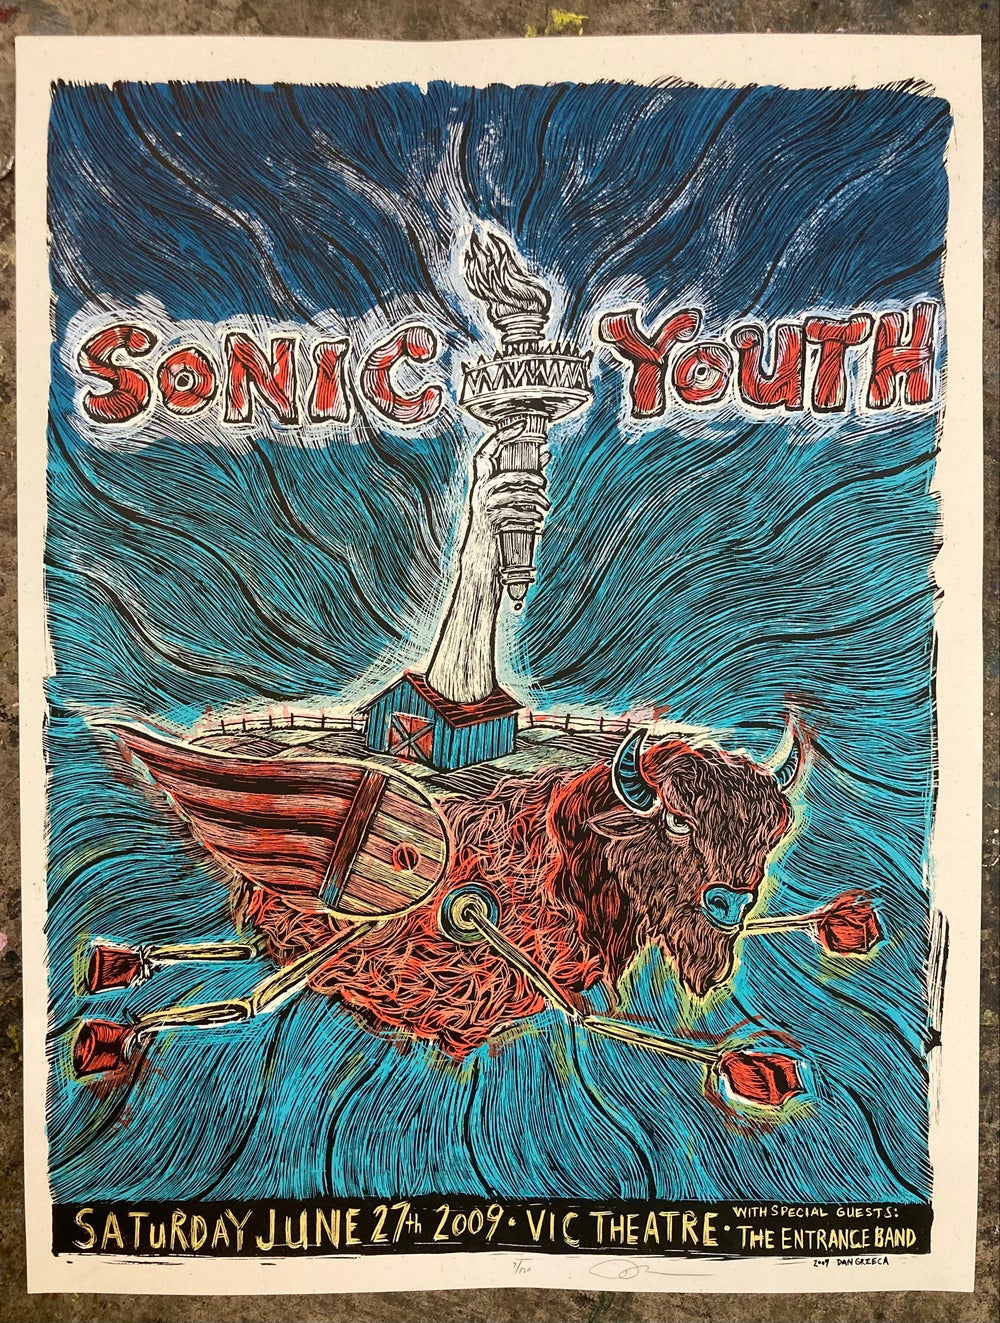 Sonic Youth Chicago 2009